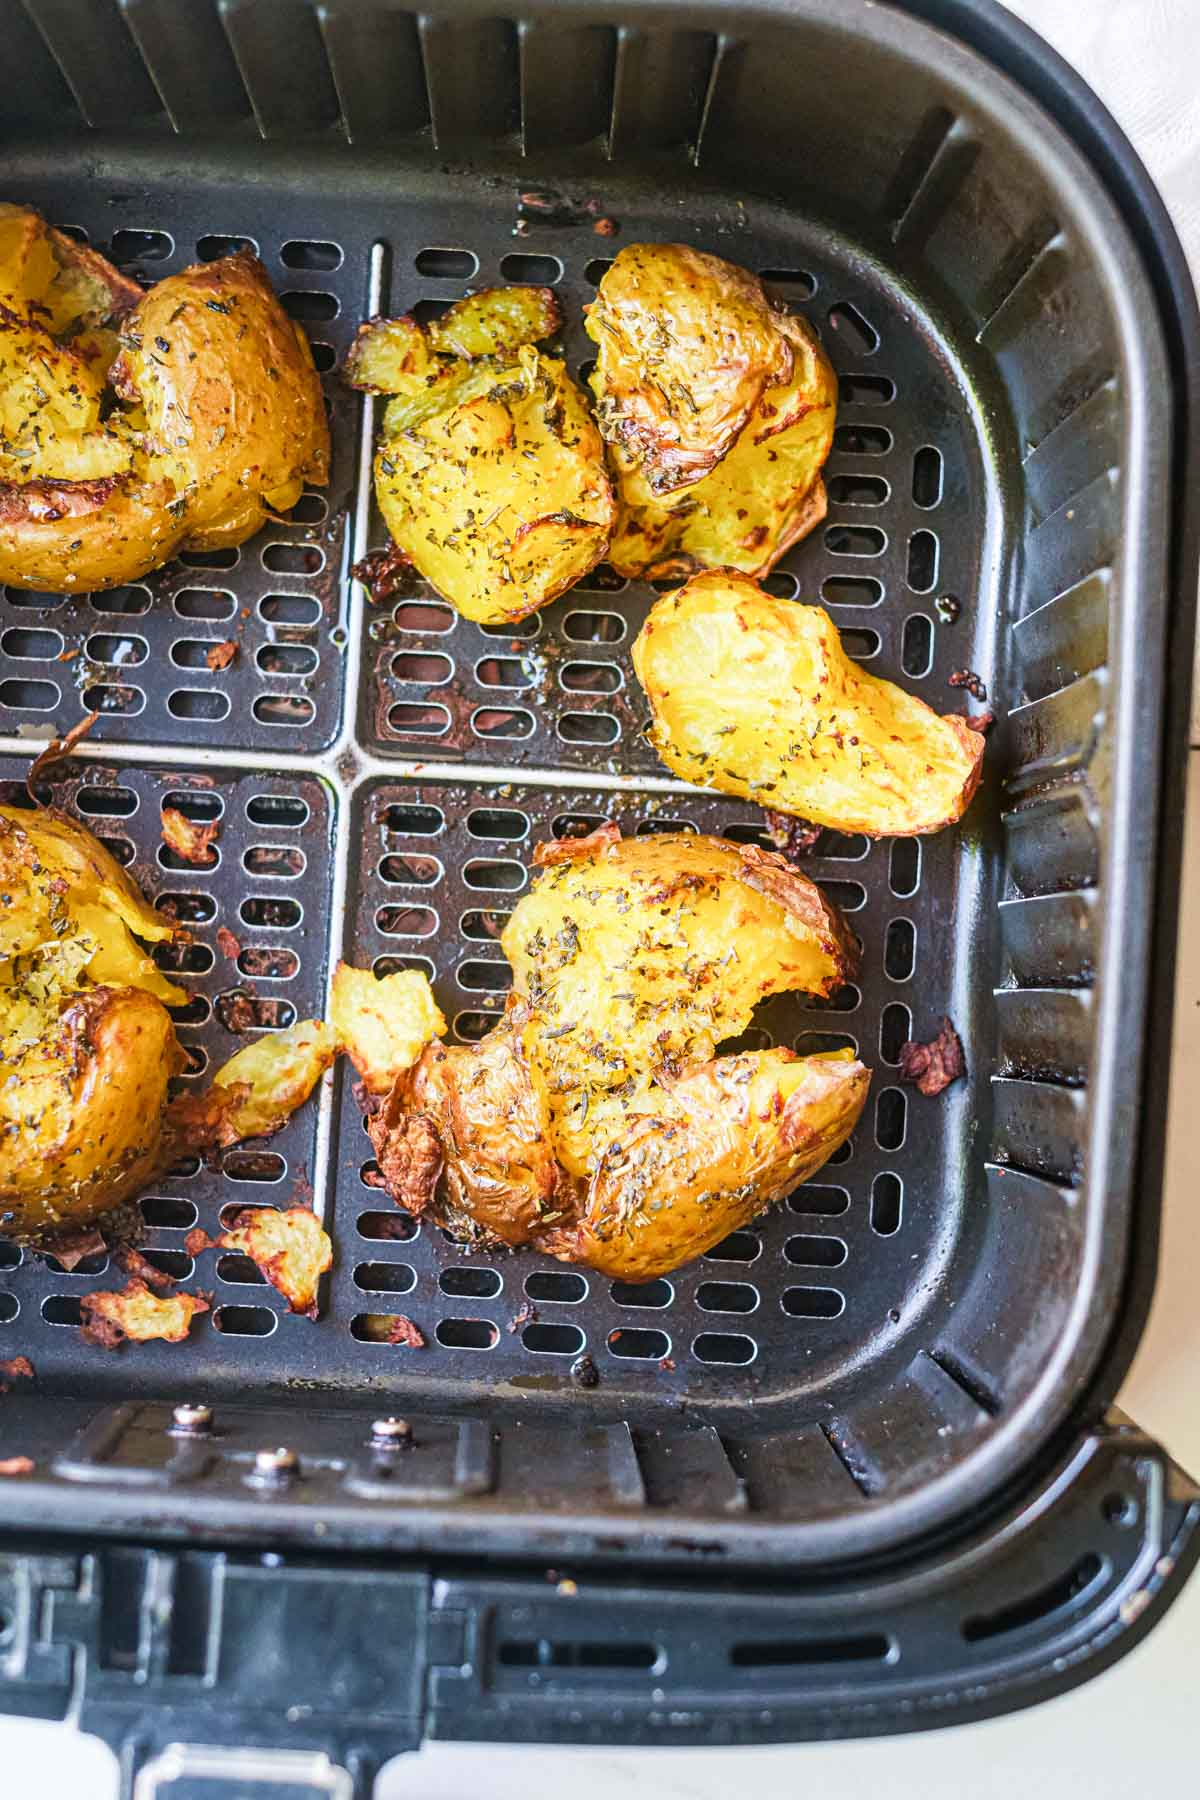 Cooked Air fryer smashed potatoes in an air fryer